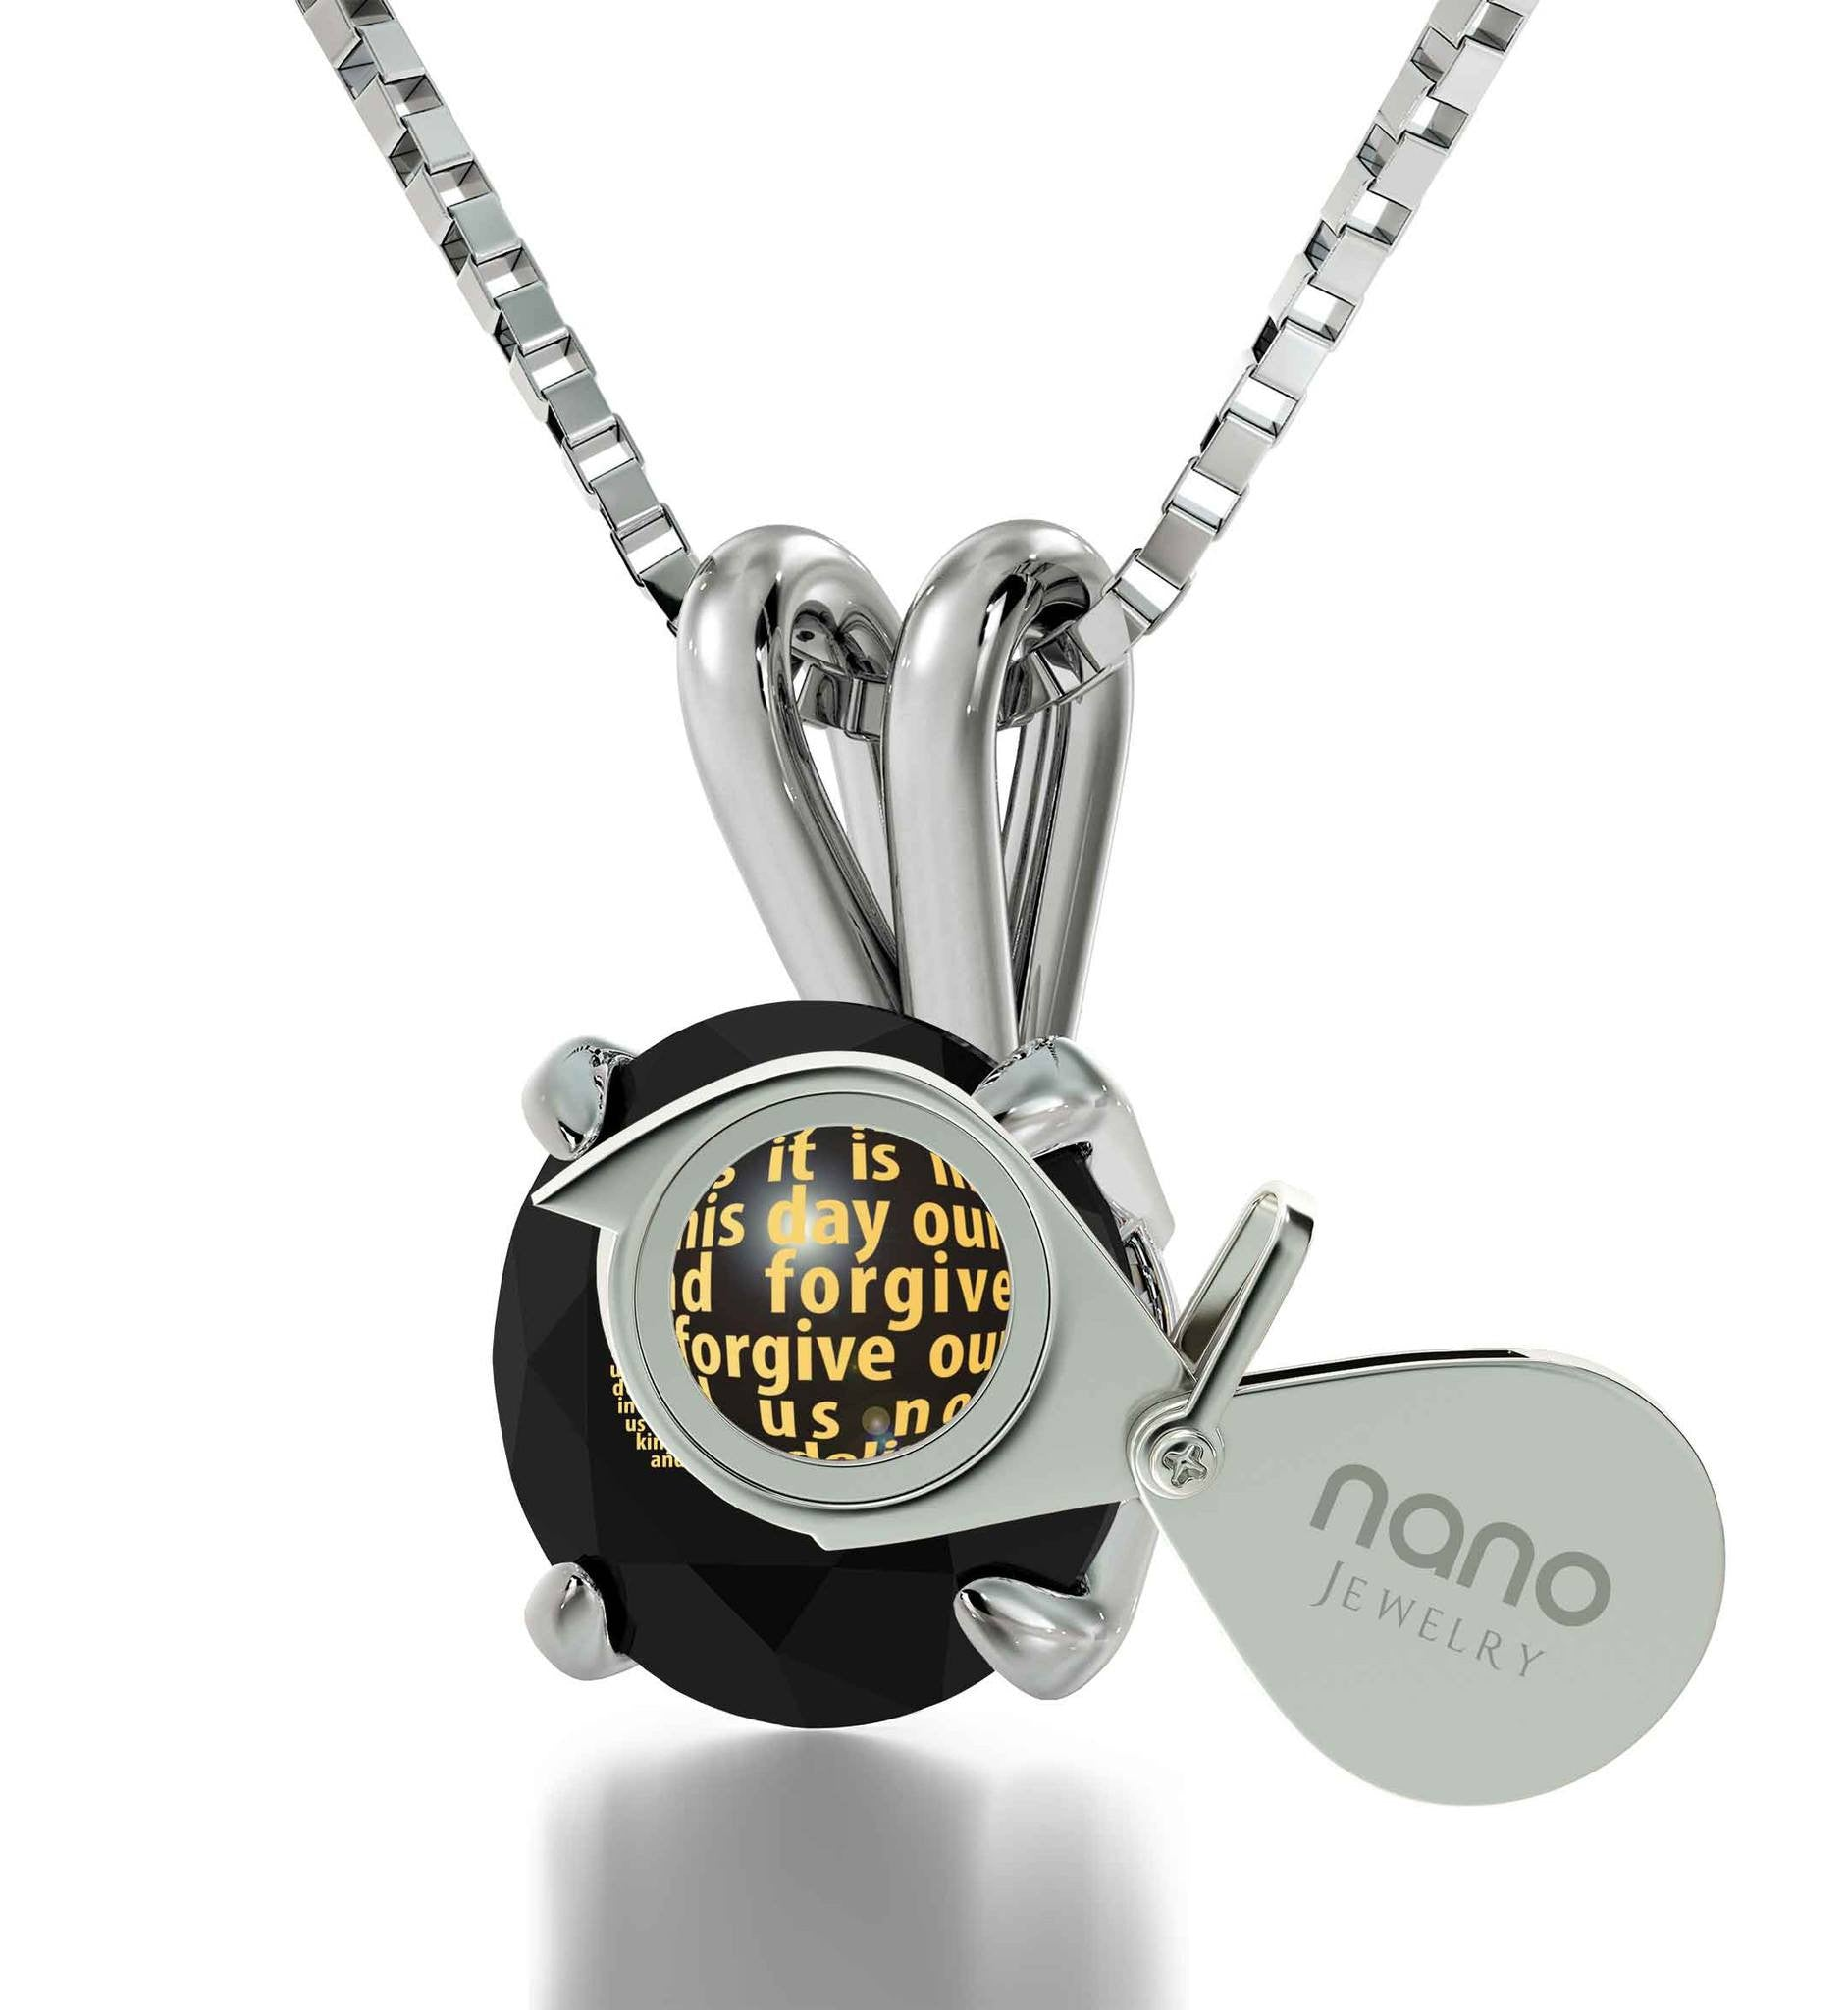 Lord's Prayer Pendant, Womens Presents, Christian Gift Items, Black Stone Necklace, Nano Jewelry